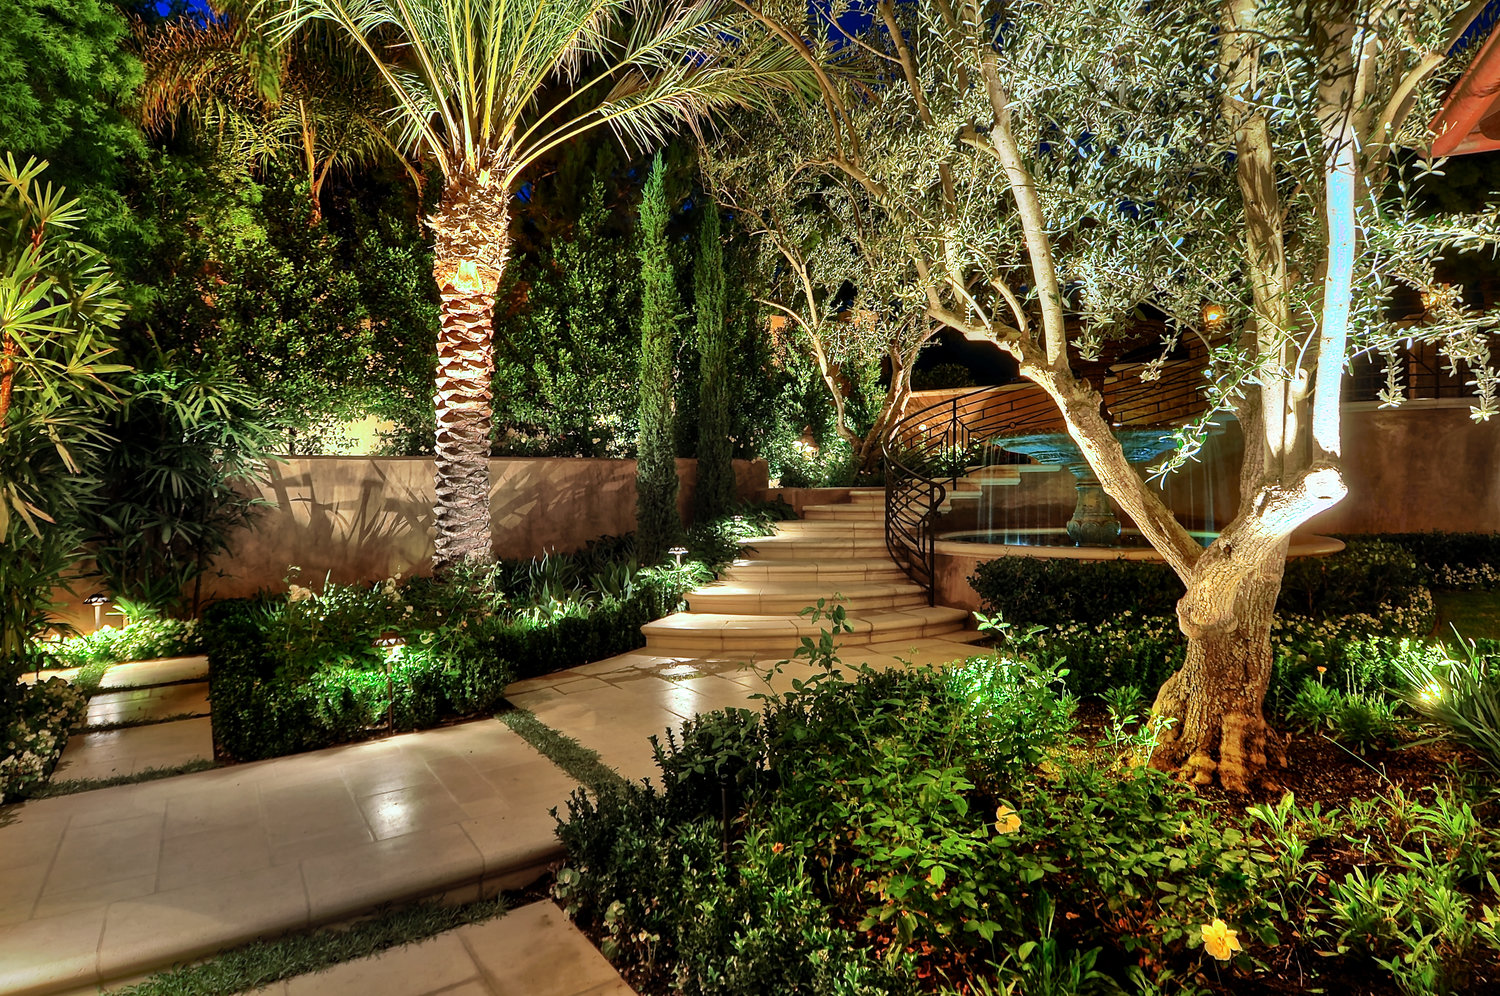 Landscape Construction that takes Advantage of the Natural Lay of the Land on Newport Beach, CA